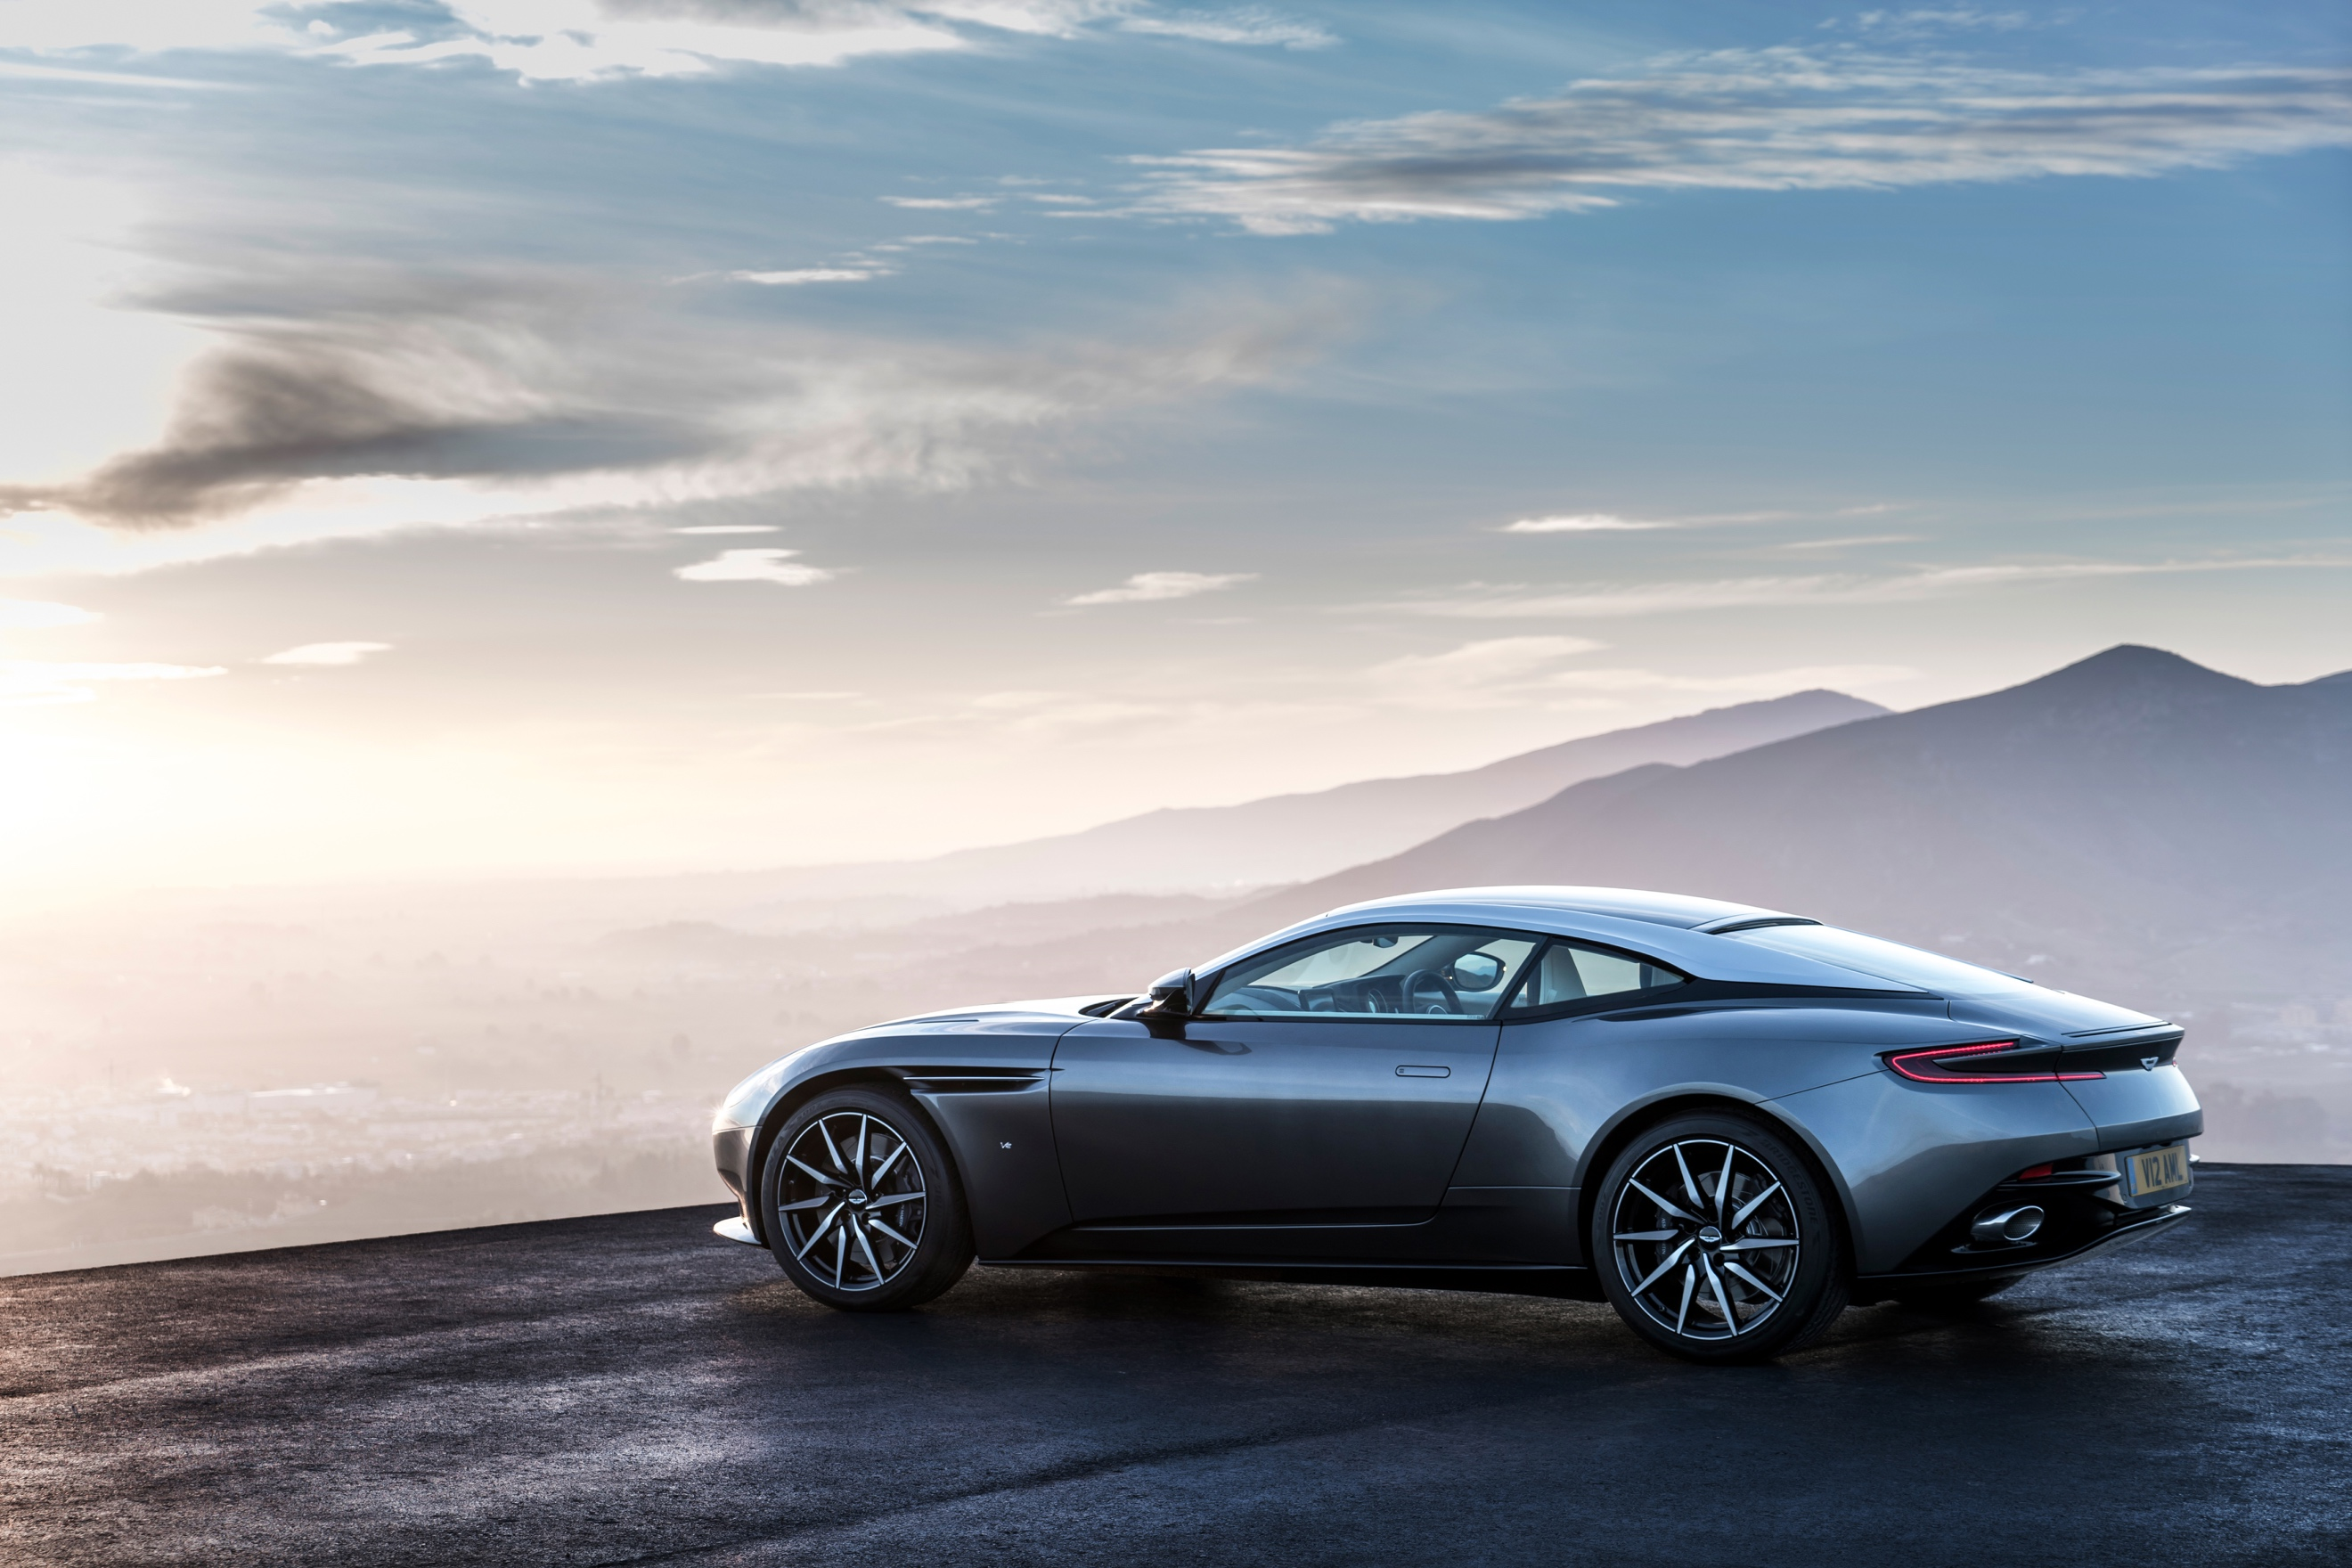 ../Press%20Kits/AstonMartin_DB11%20Press%20Kit%20-%20EMBARGO%2014/DB11%20Launch%20Photography%20(Registration%20Plate)/Aston%20Martin%20DB11_Embargo%20010316%201400CET_04.jpg